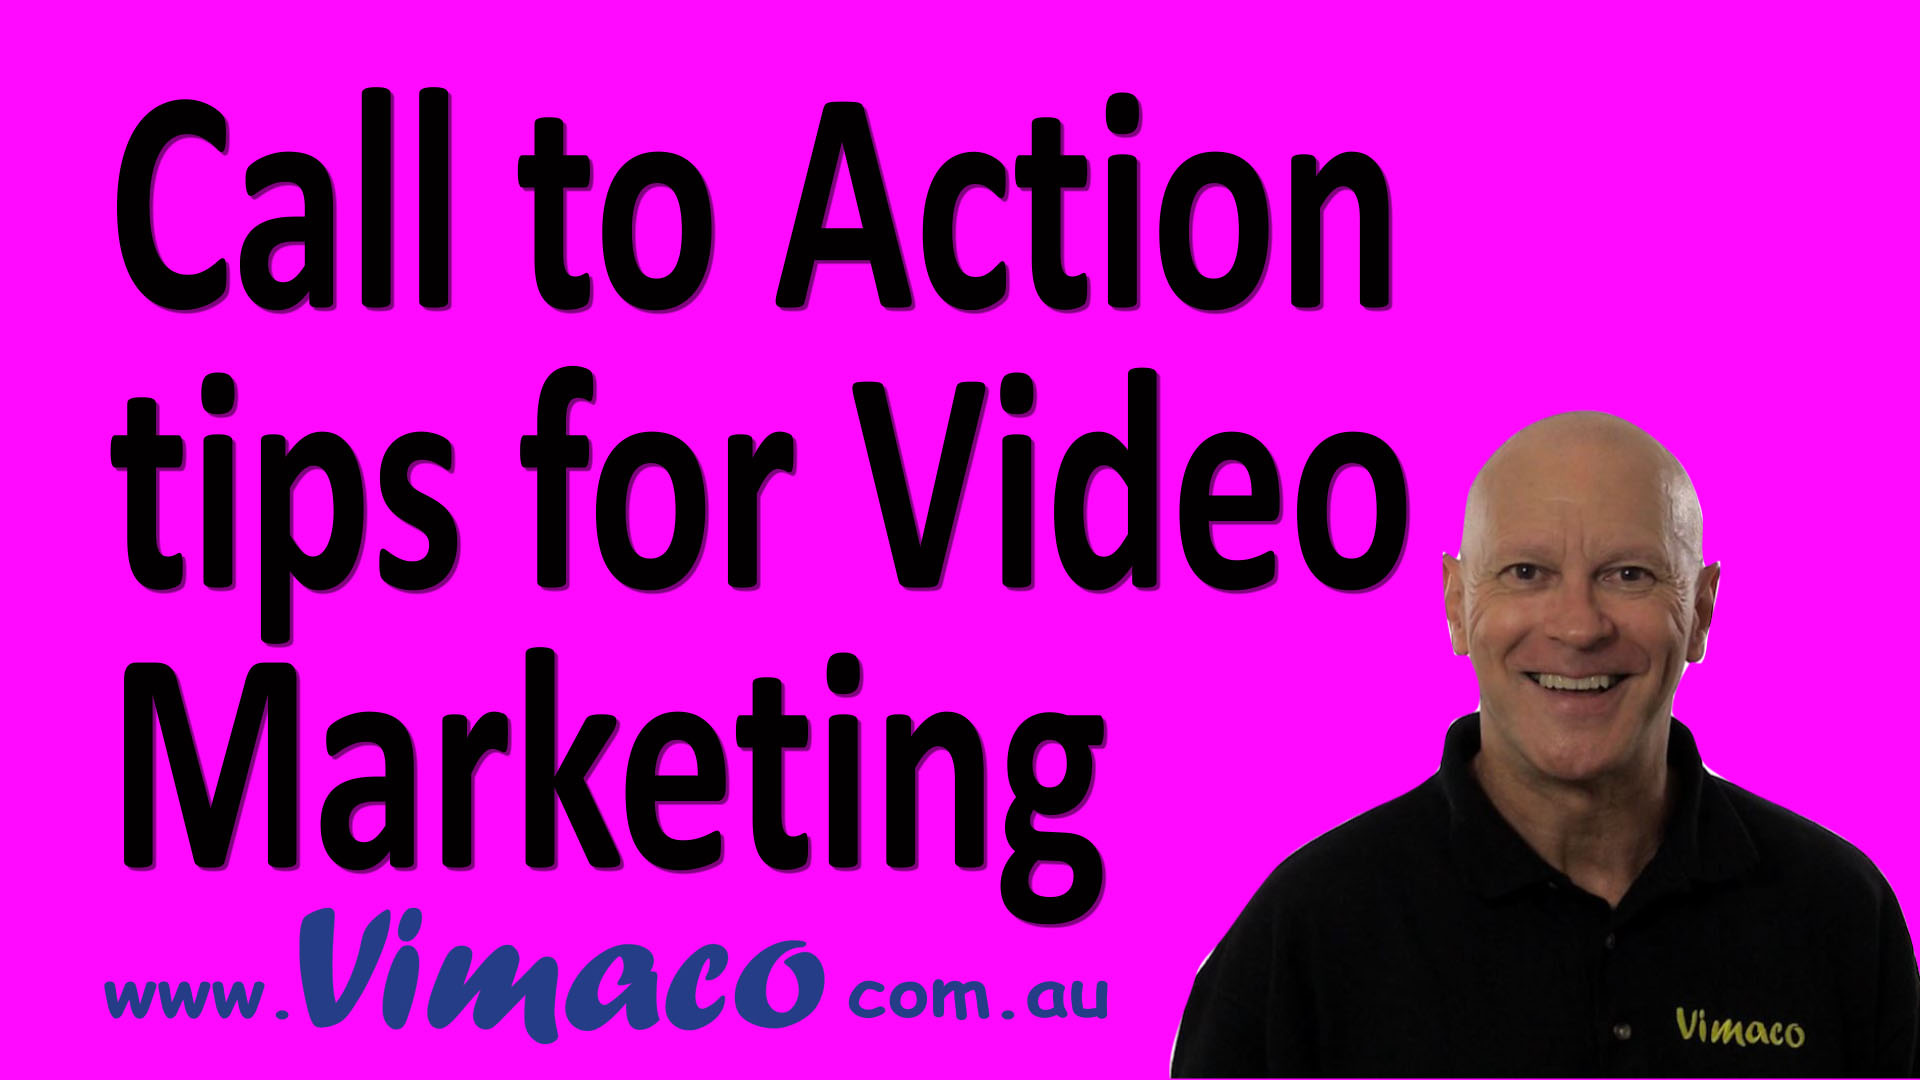 Call to Action Tips for Video Marketing